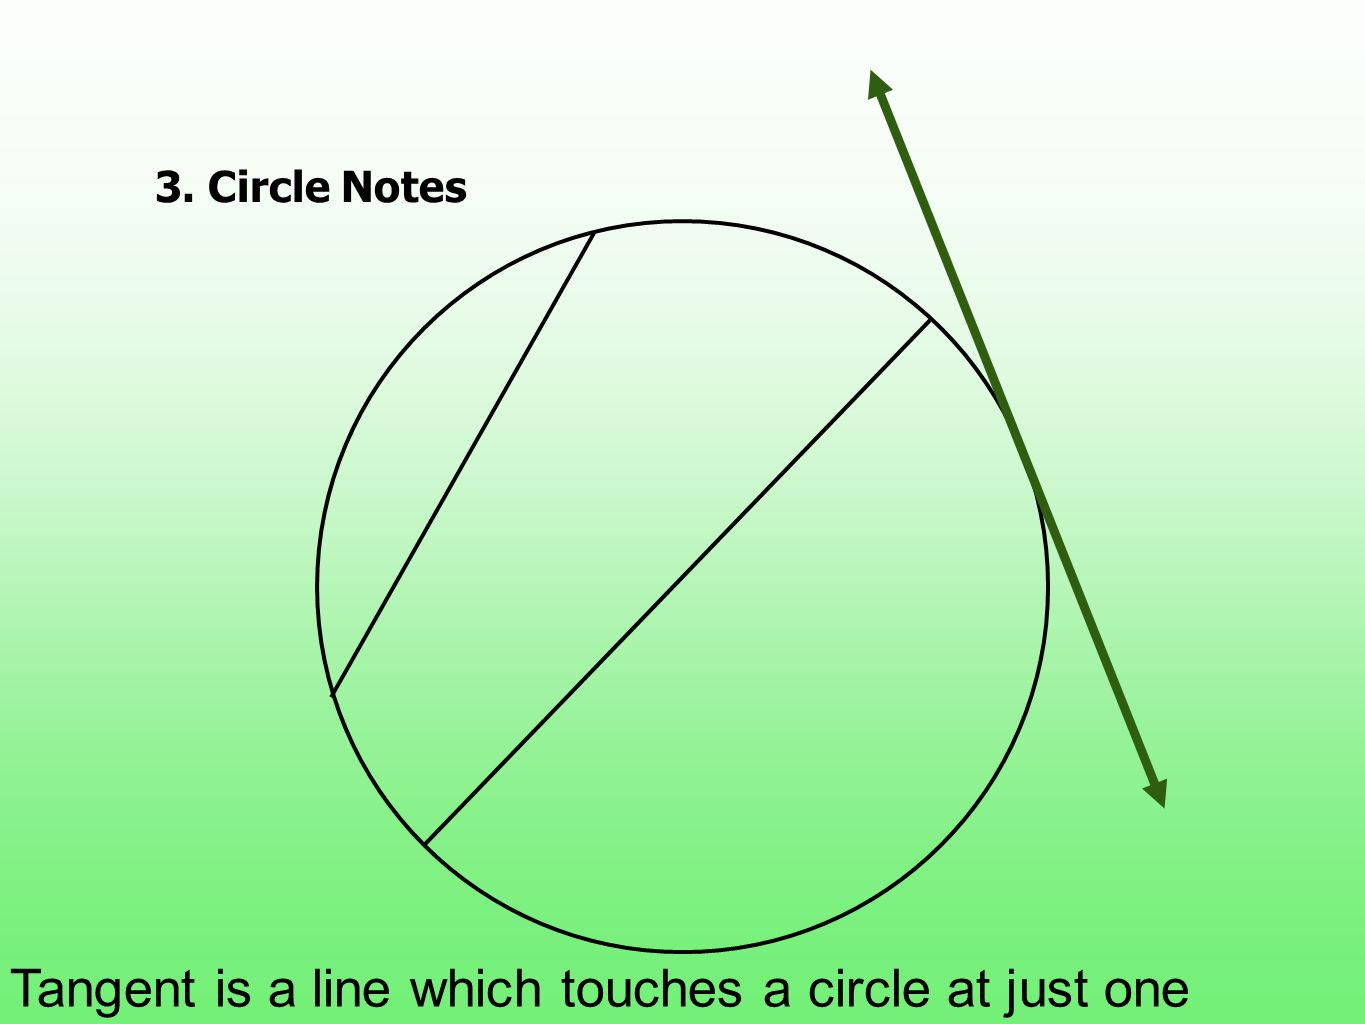 Tangent is a line which touches a circle at just one point.